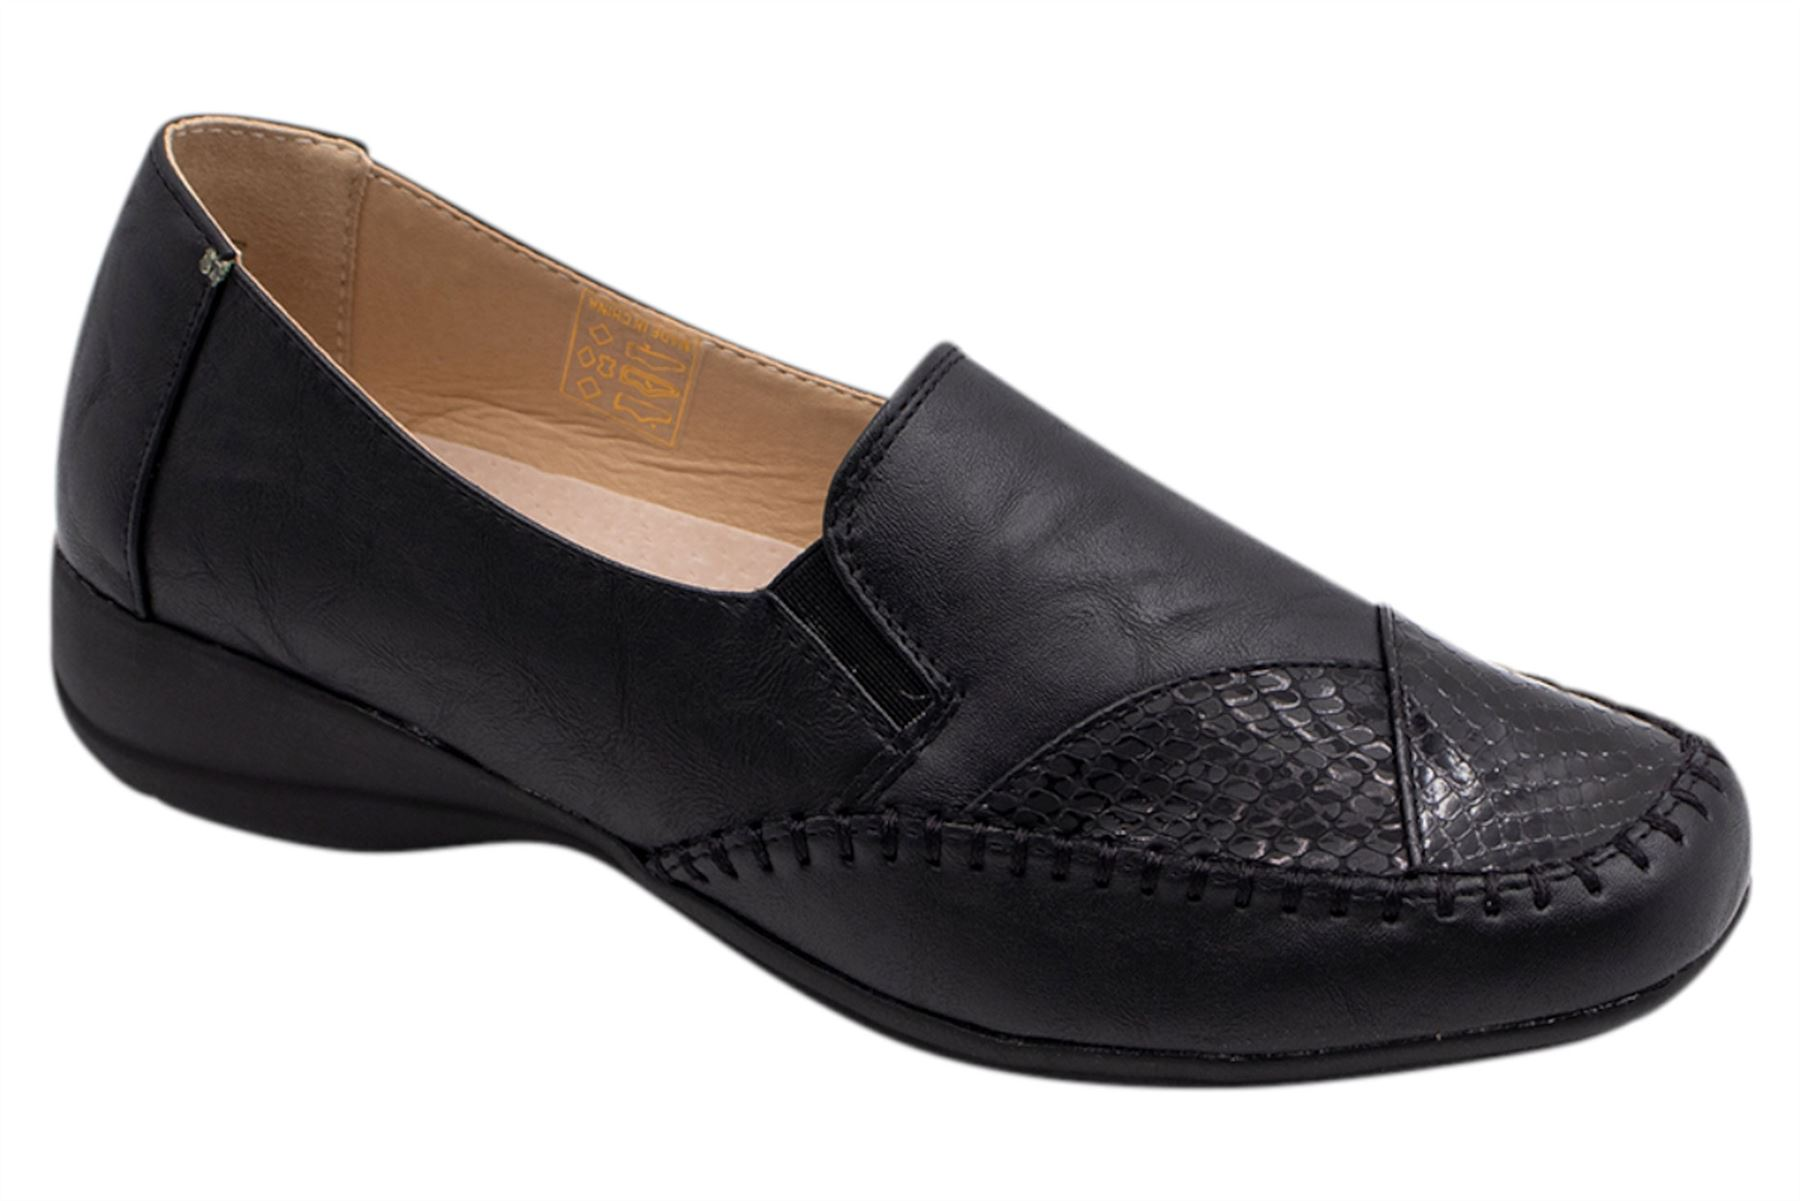 Womens-Flat-Shoes-Ladies-Pumps-Office-Work-Casual-Slip-On-Loafer-Size thumbnail 6